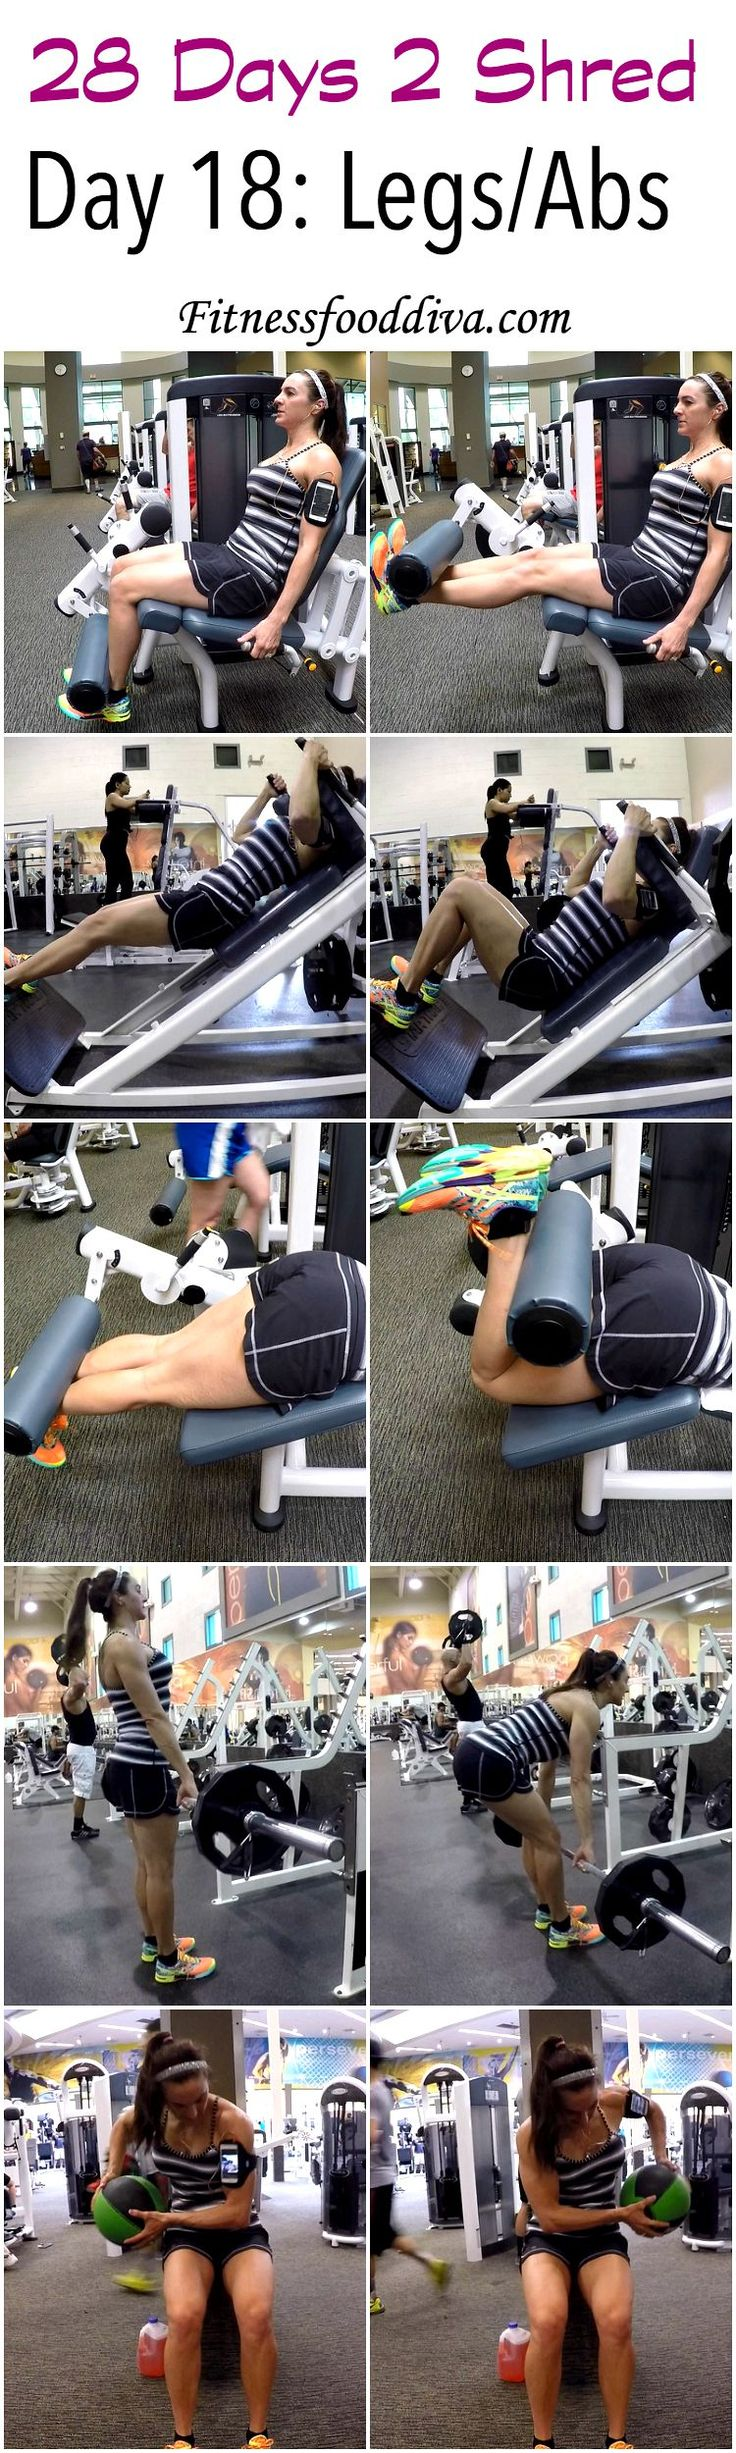 Day 18: Legs/Abs workout/video